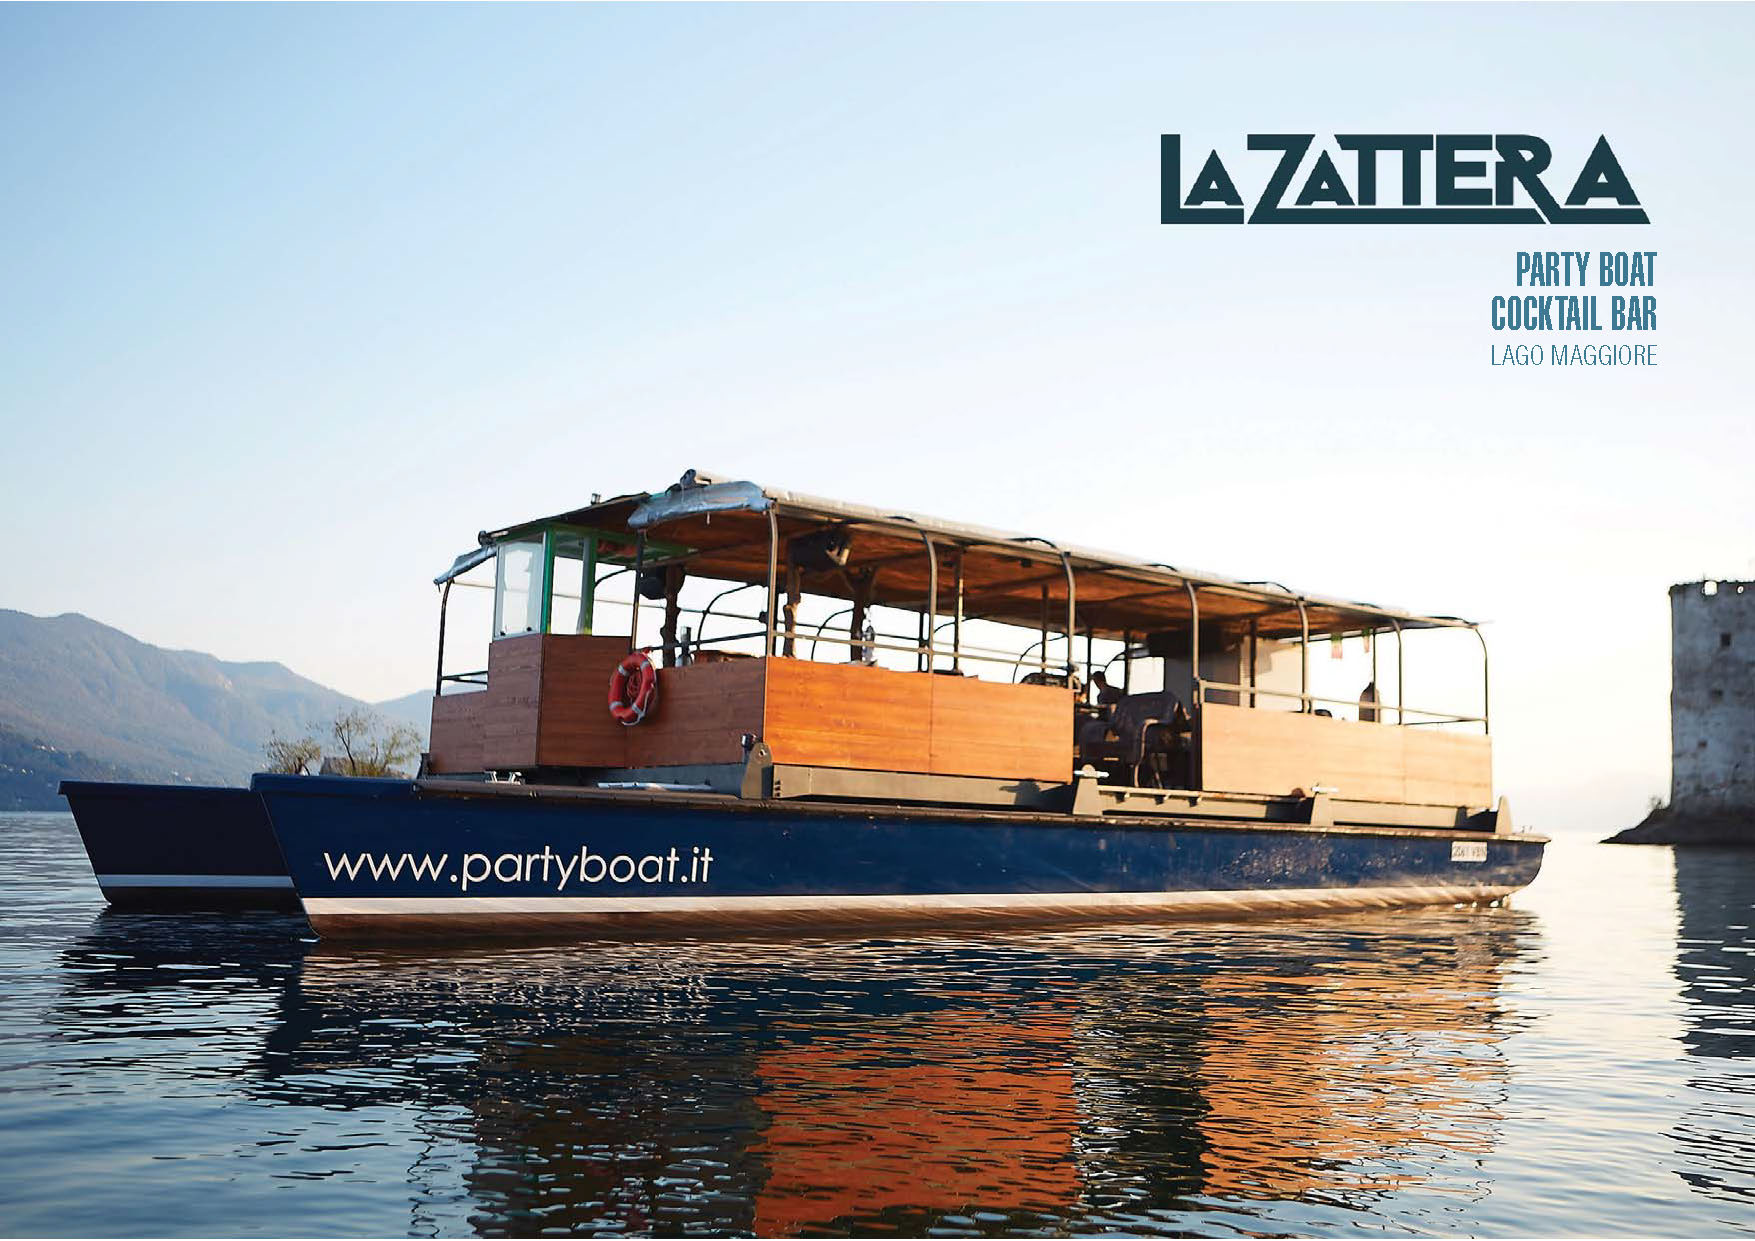 La Zattera ecopartyboat